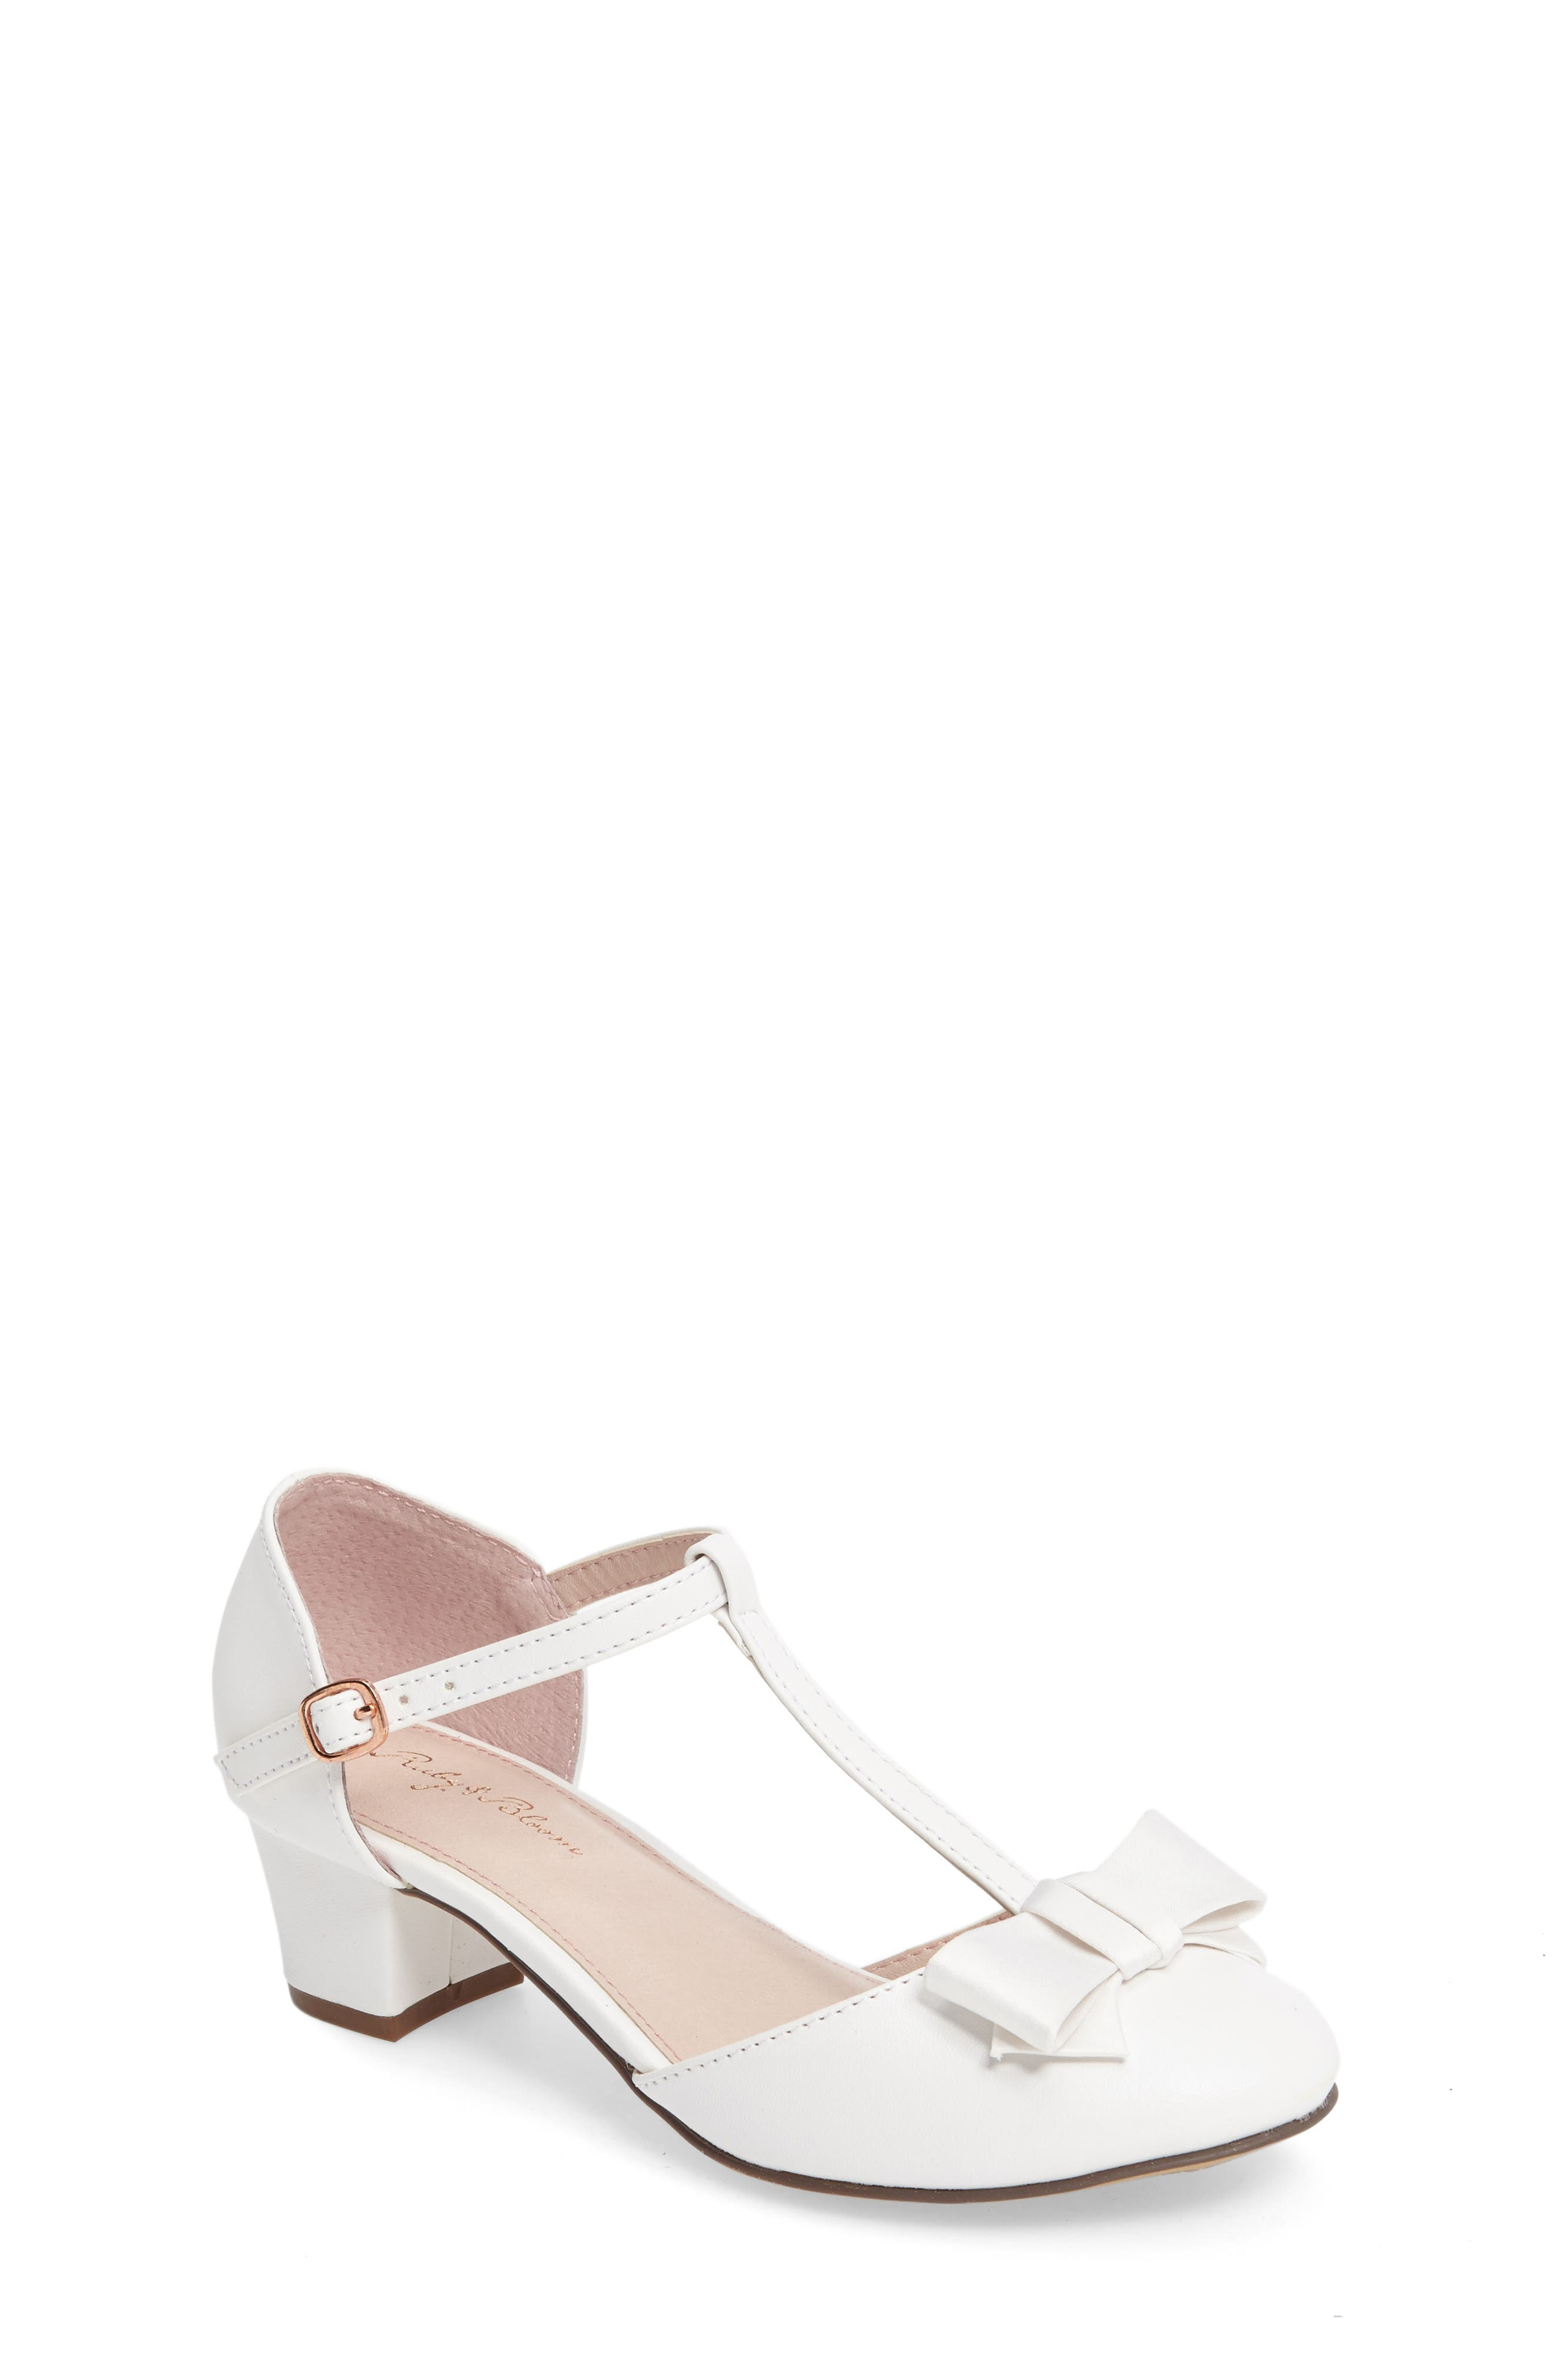 Wylow T-Strap Bow Pump,                         Main,                         color, White Faux Leather